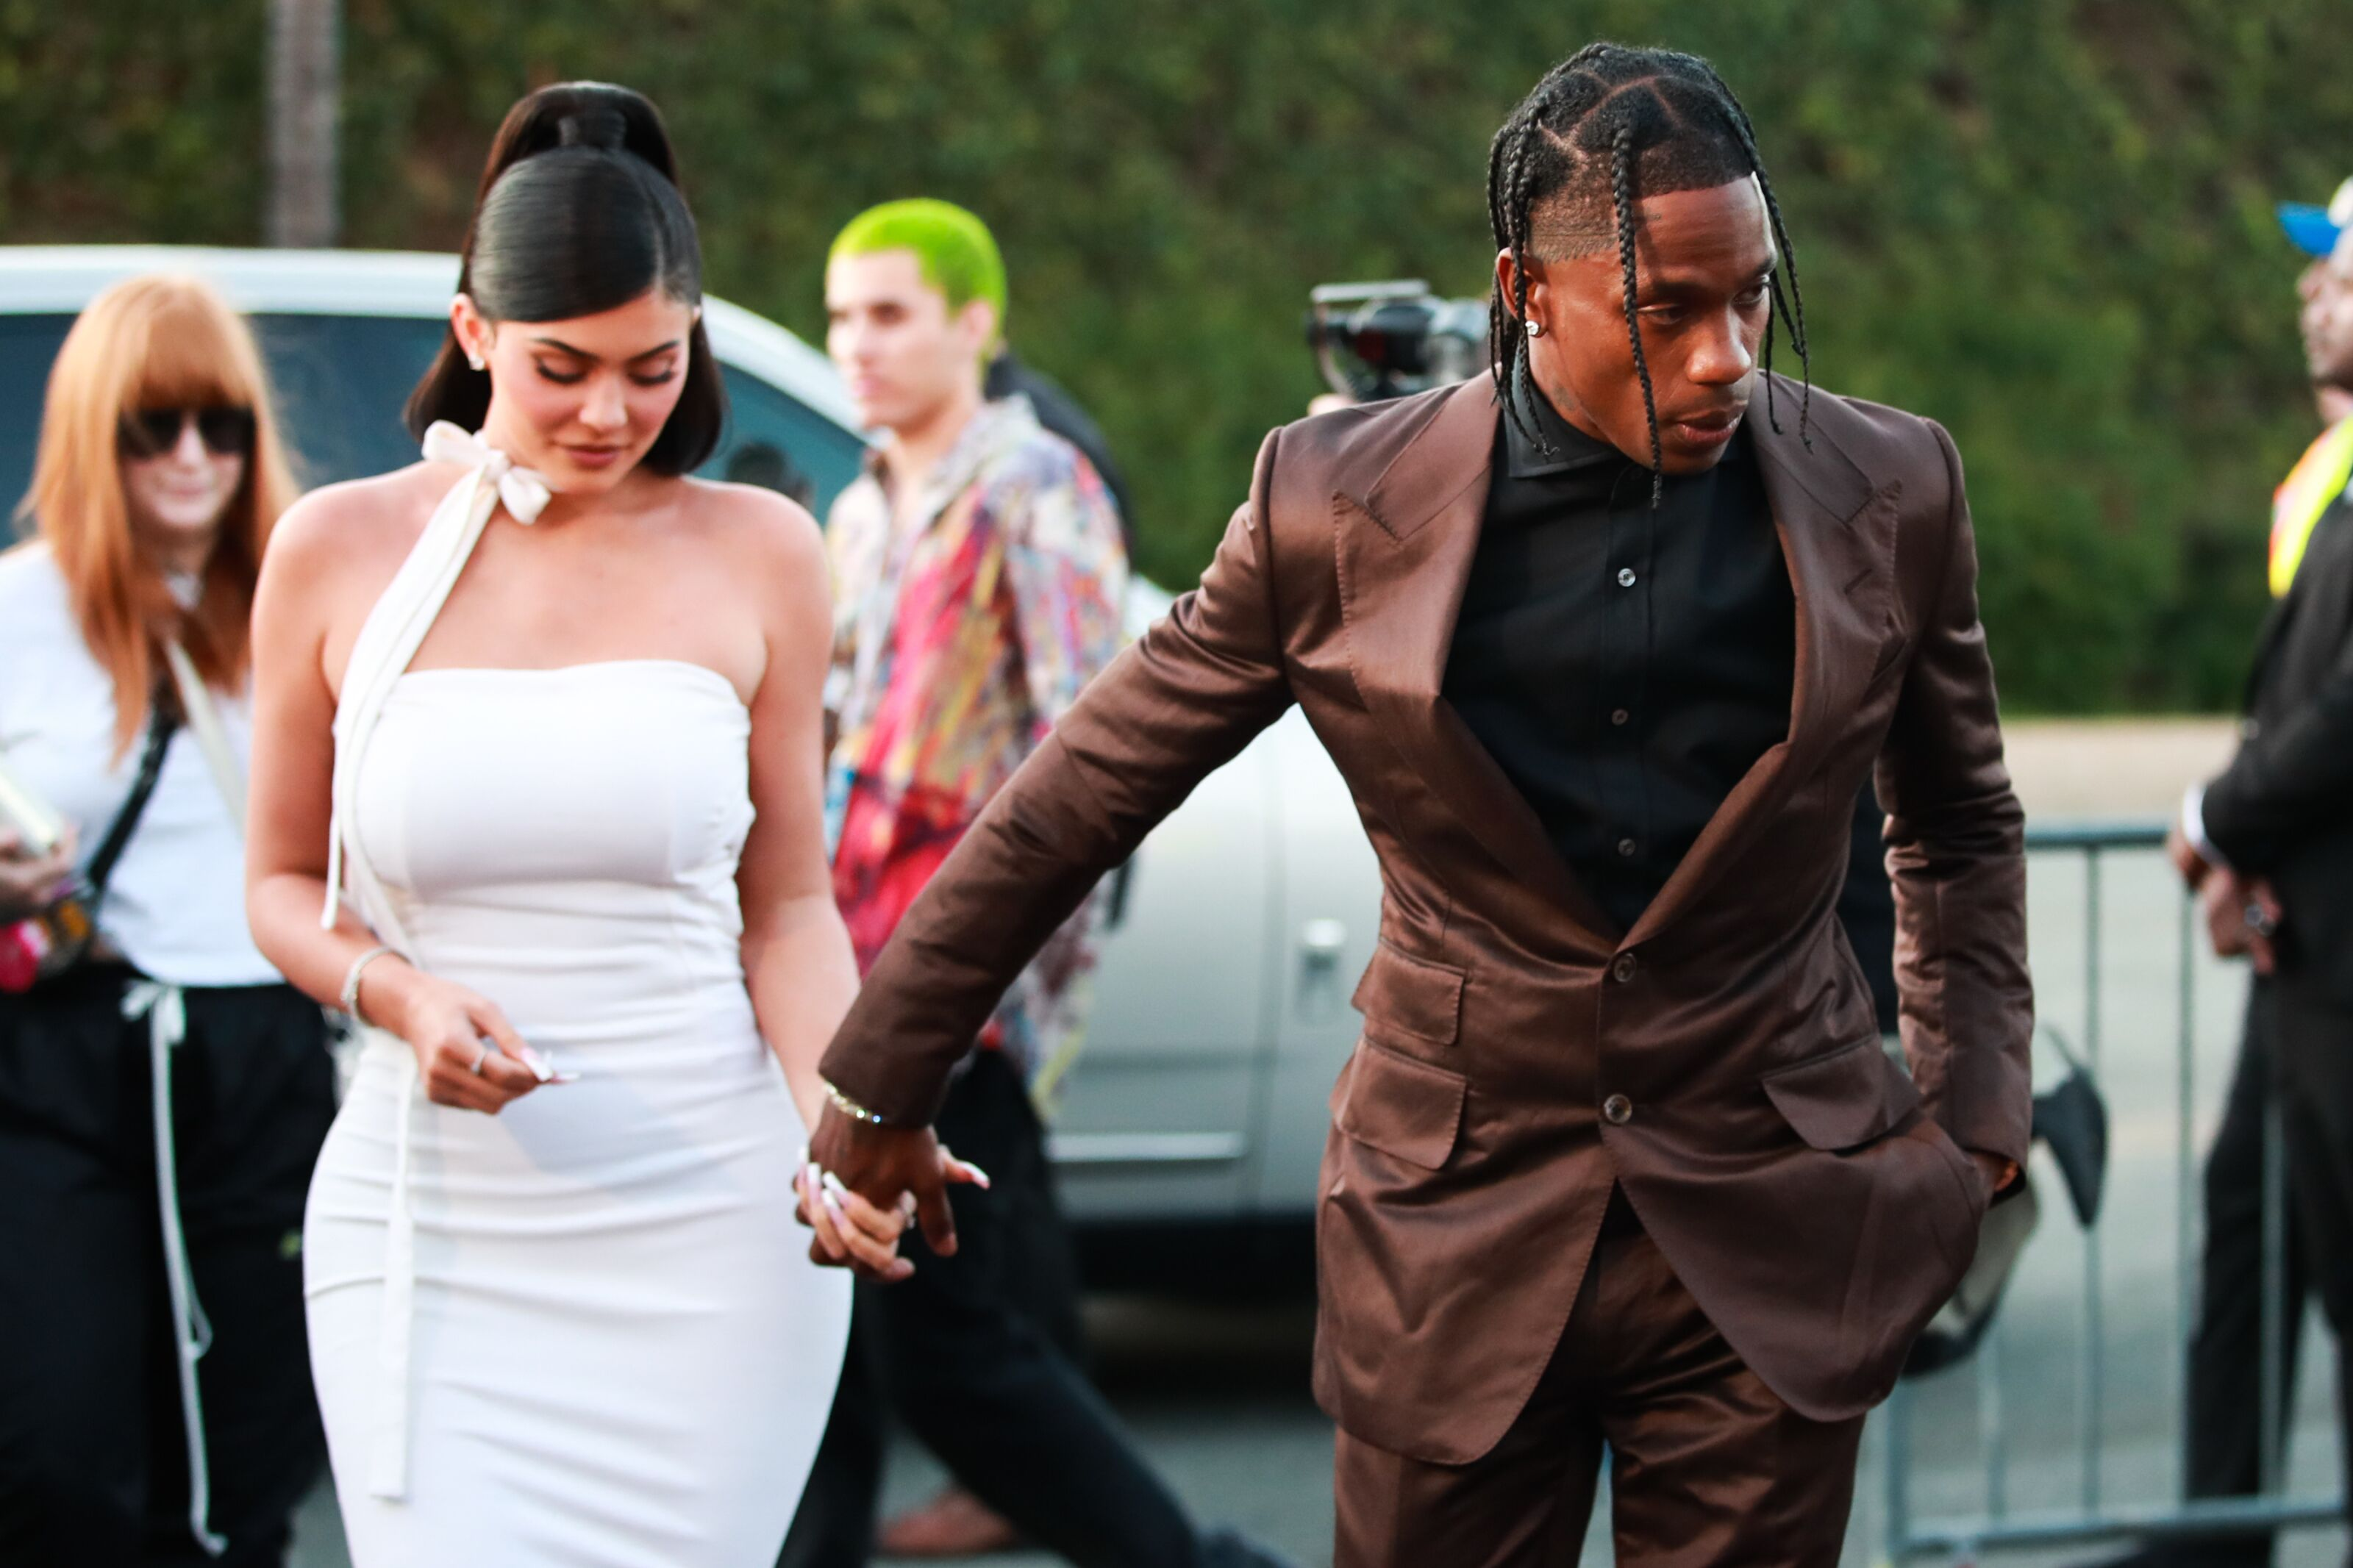 5 best pop culture betting odds: Will Kylie Jenner and Travis Scott get back together?